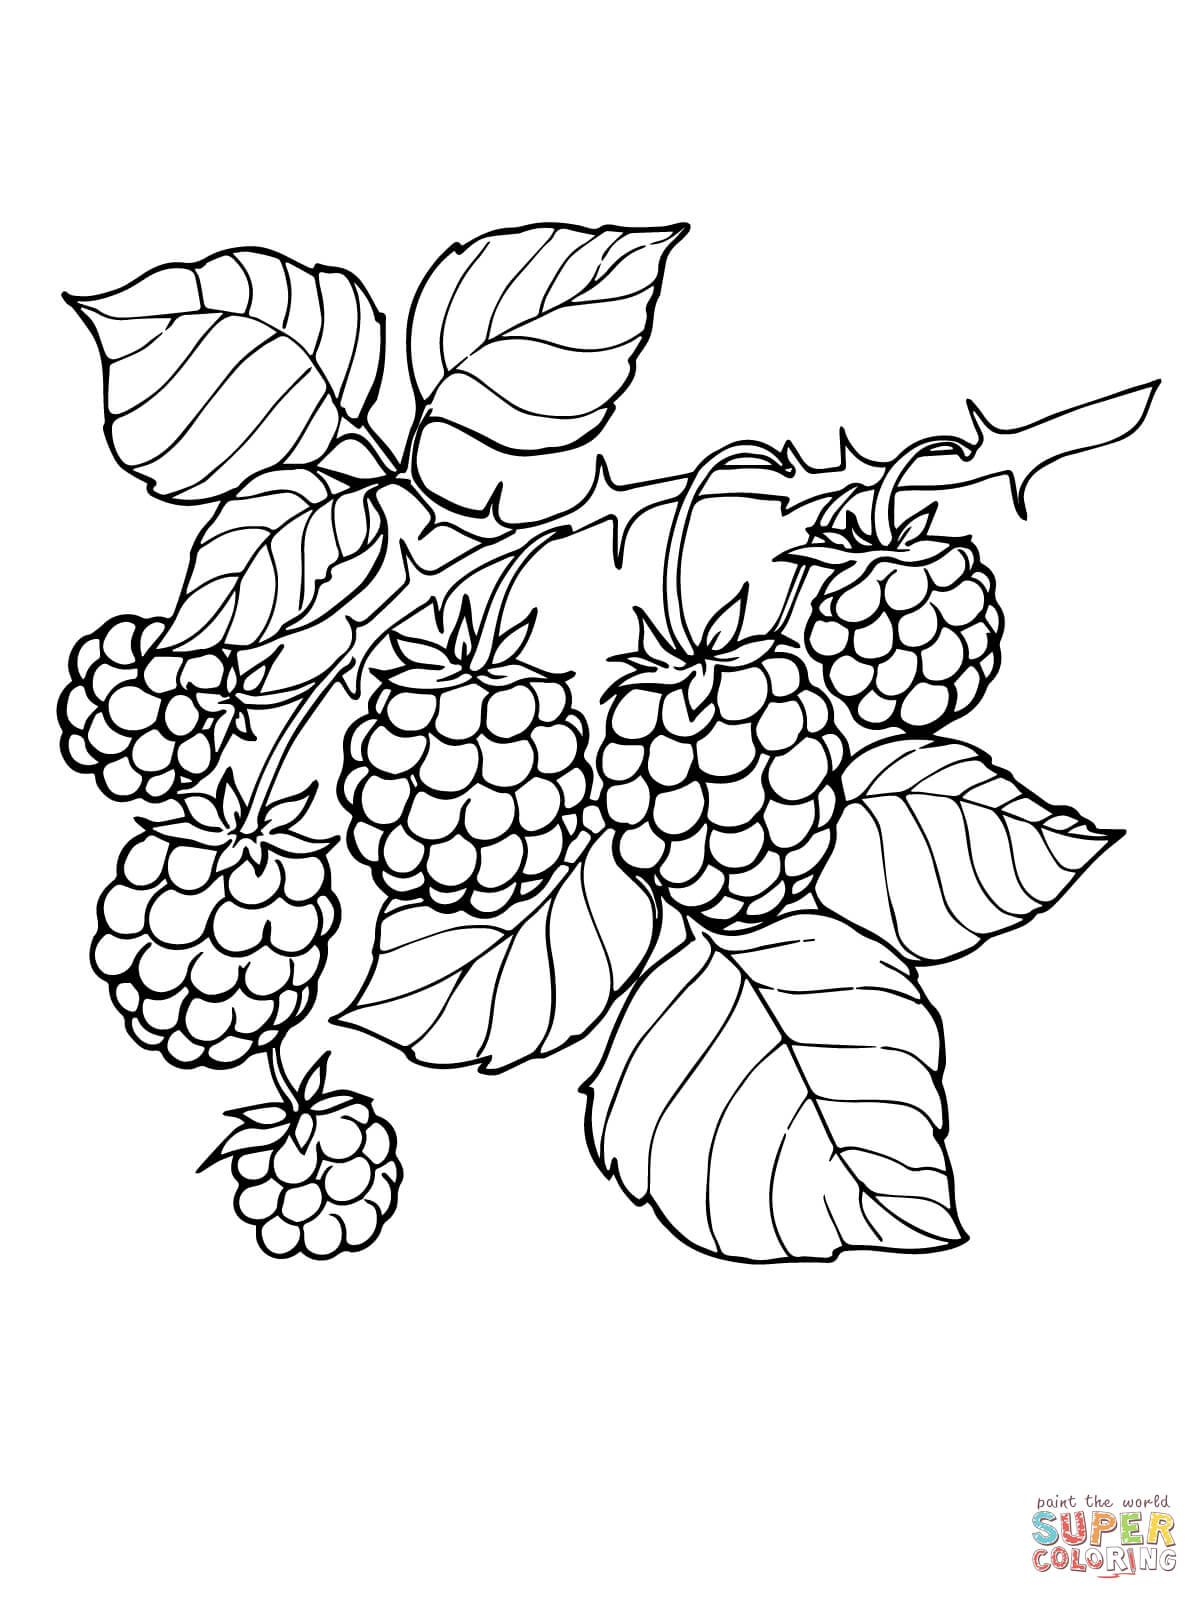 Blackberry Branch | Super Coloring | Drawing Flowers / Tutorials ...